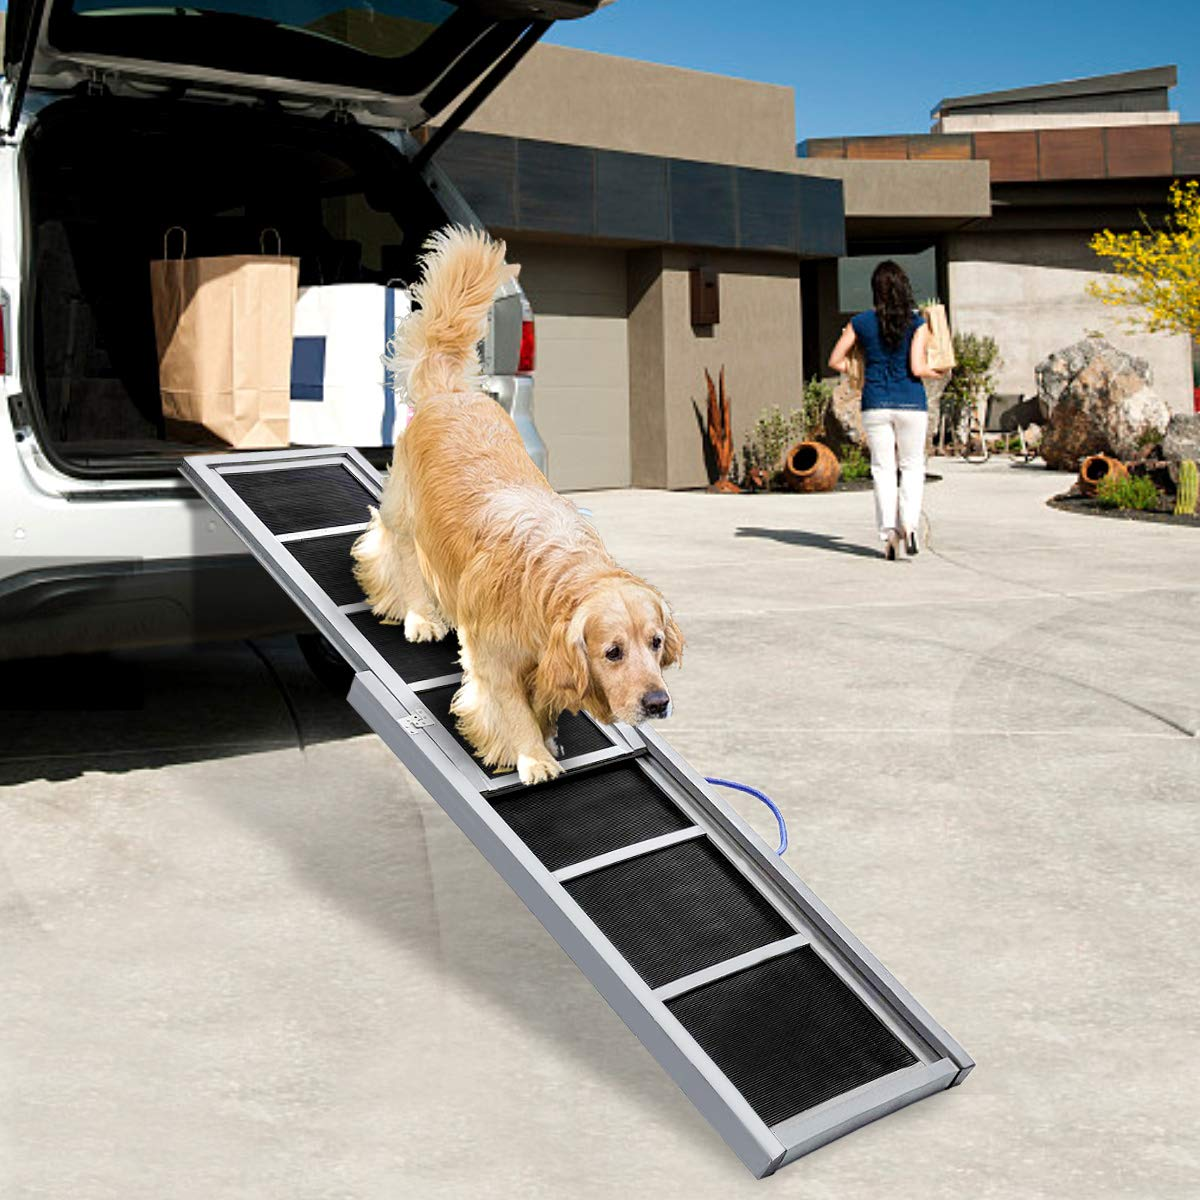 TOOCA Dog Ramps Telescoping Non-Slip Stable Wooden Pet Ladder for Steep Inclines Compact Portable for Car Storage by TOOCA